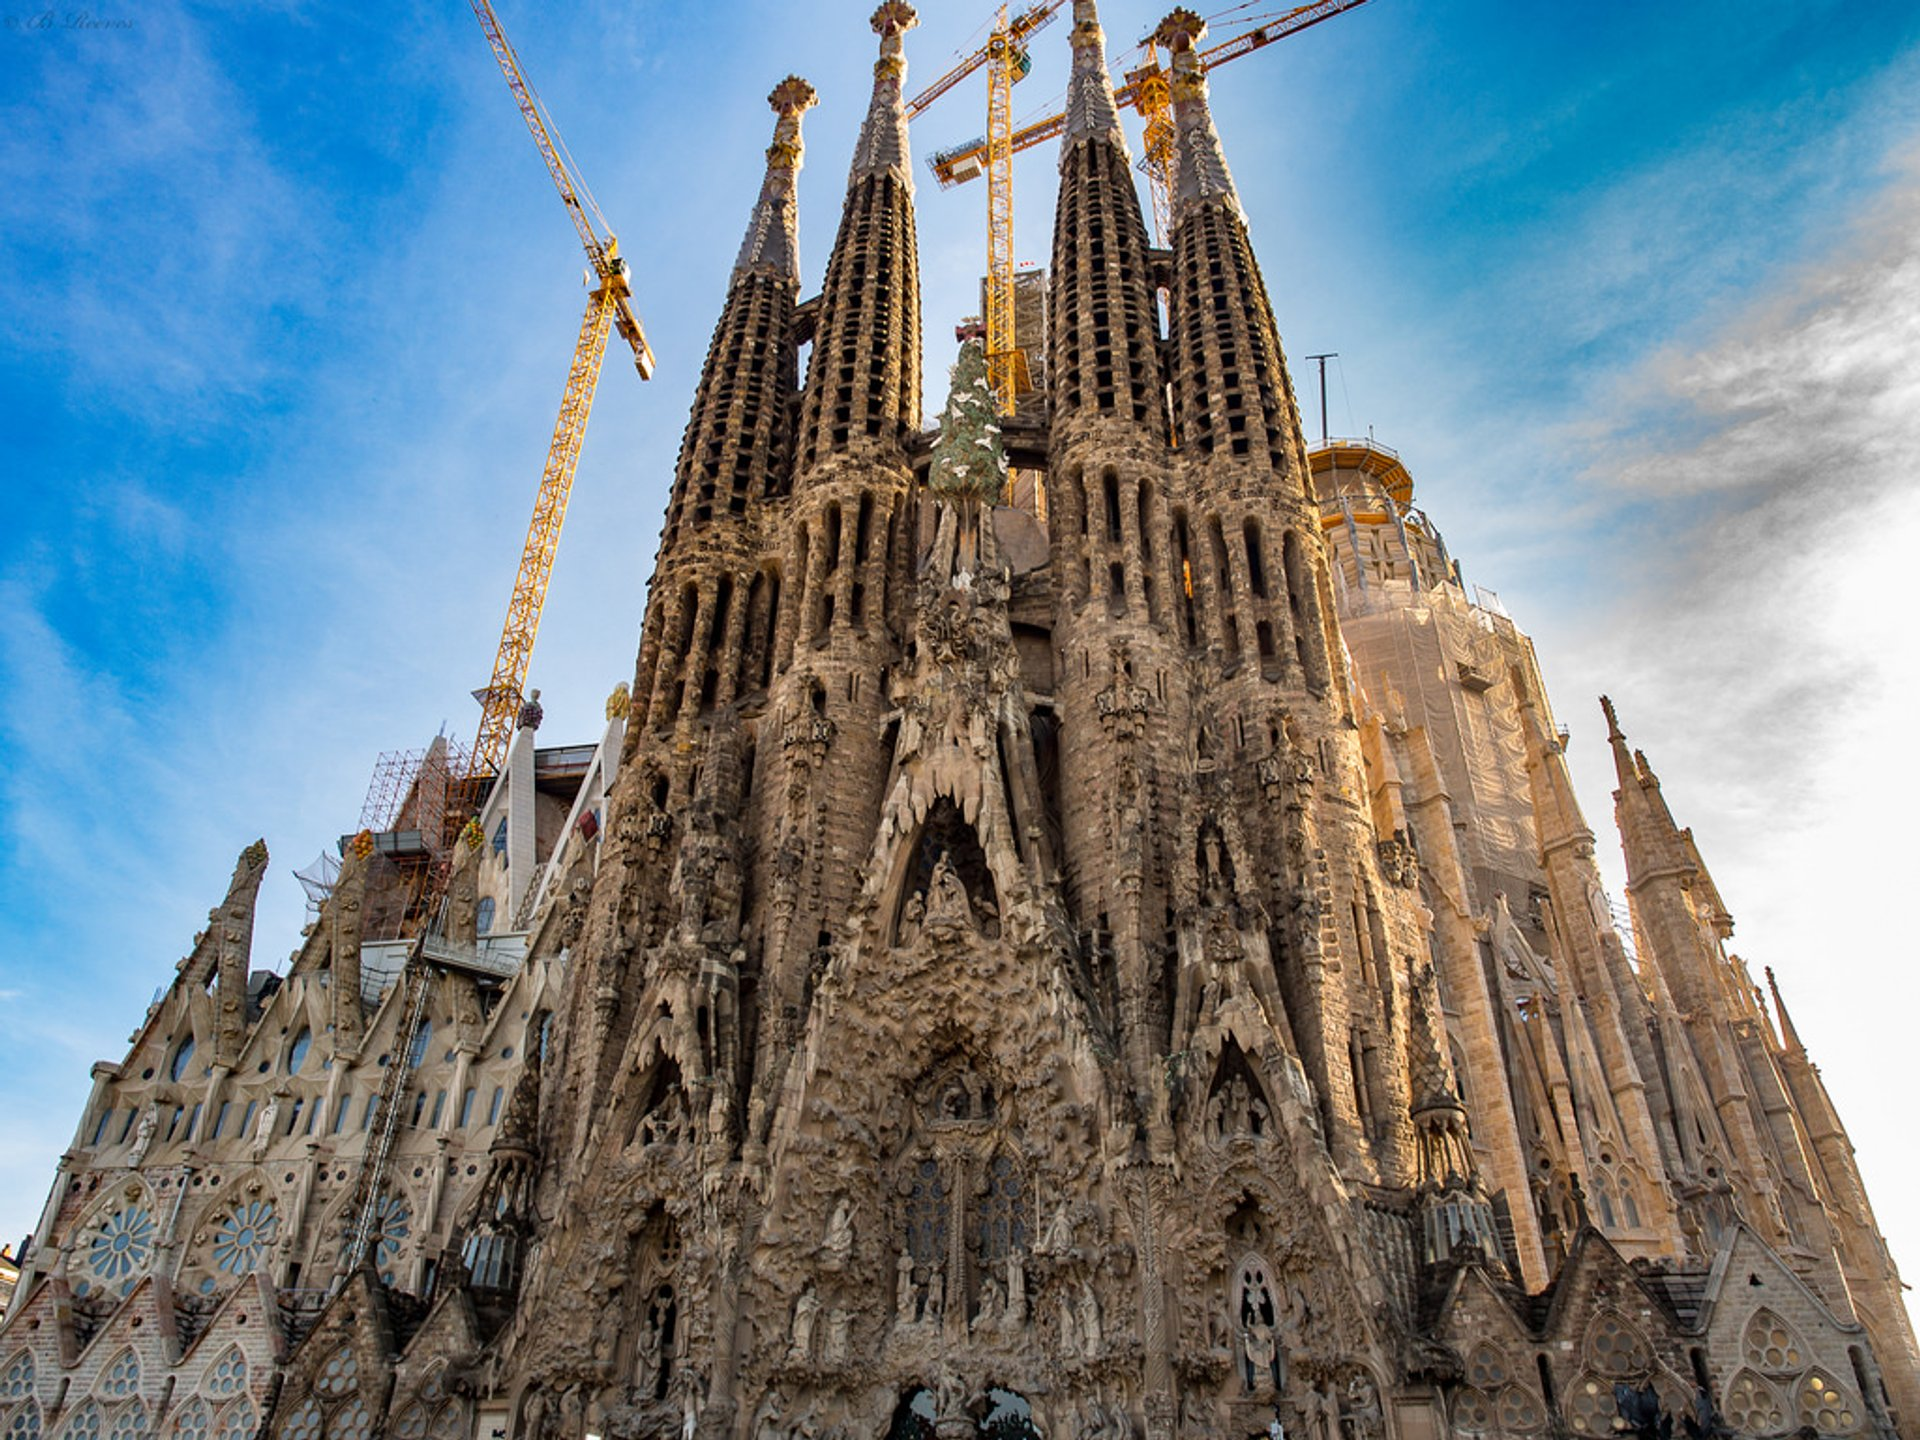 Sagrada Familia in Barcelona 2020 - Best Time